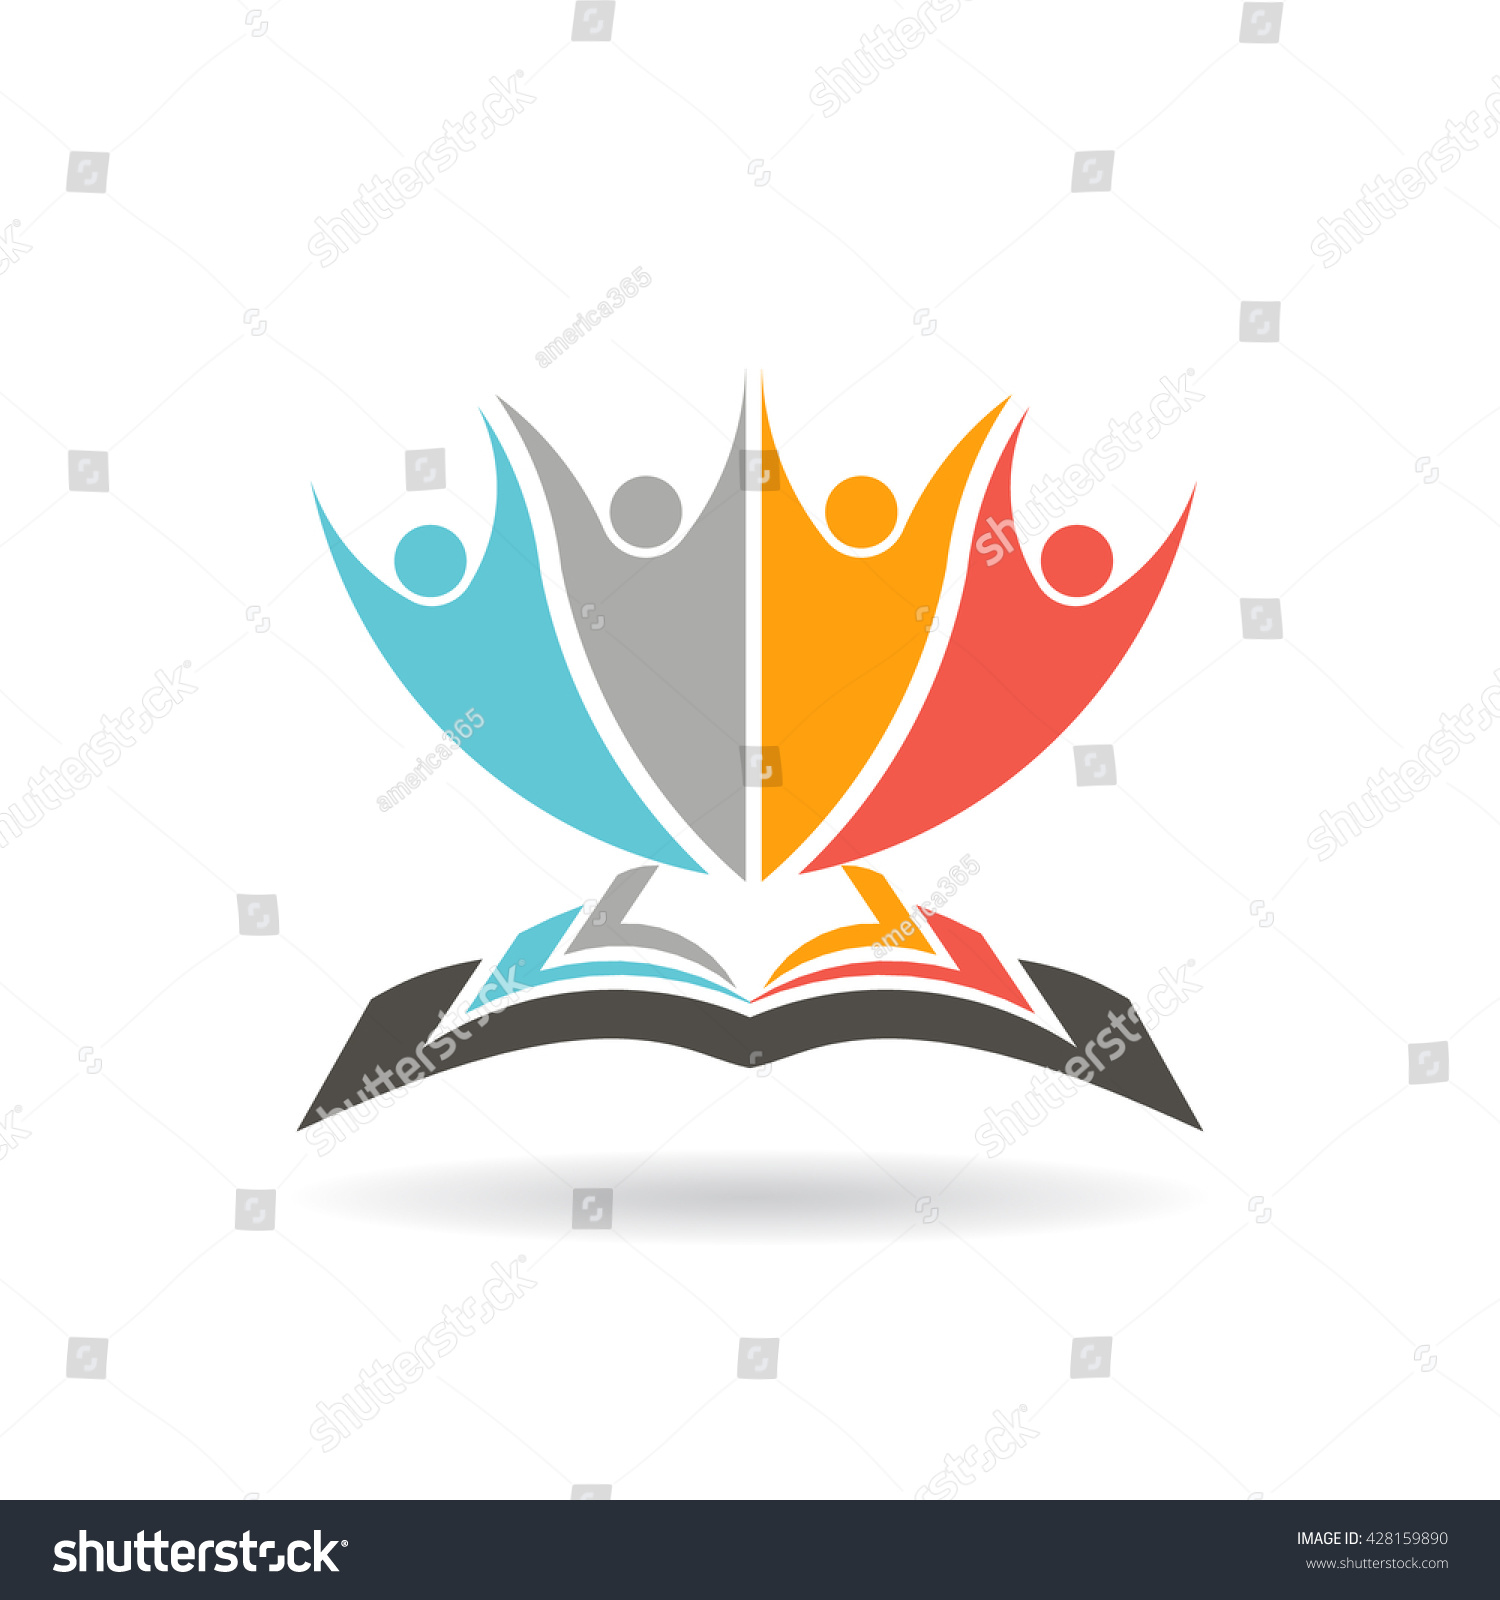 book campaign logo people education stock vector  people education study and literature vector graphic illustration